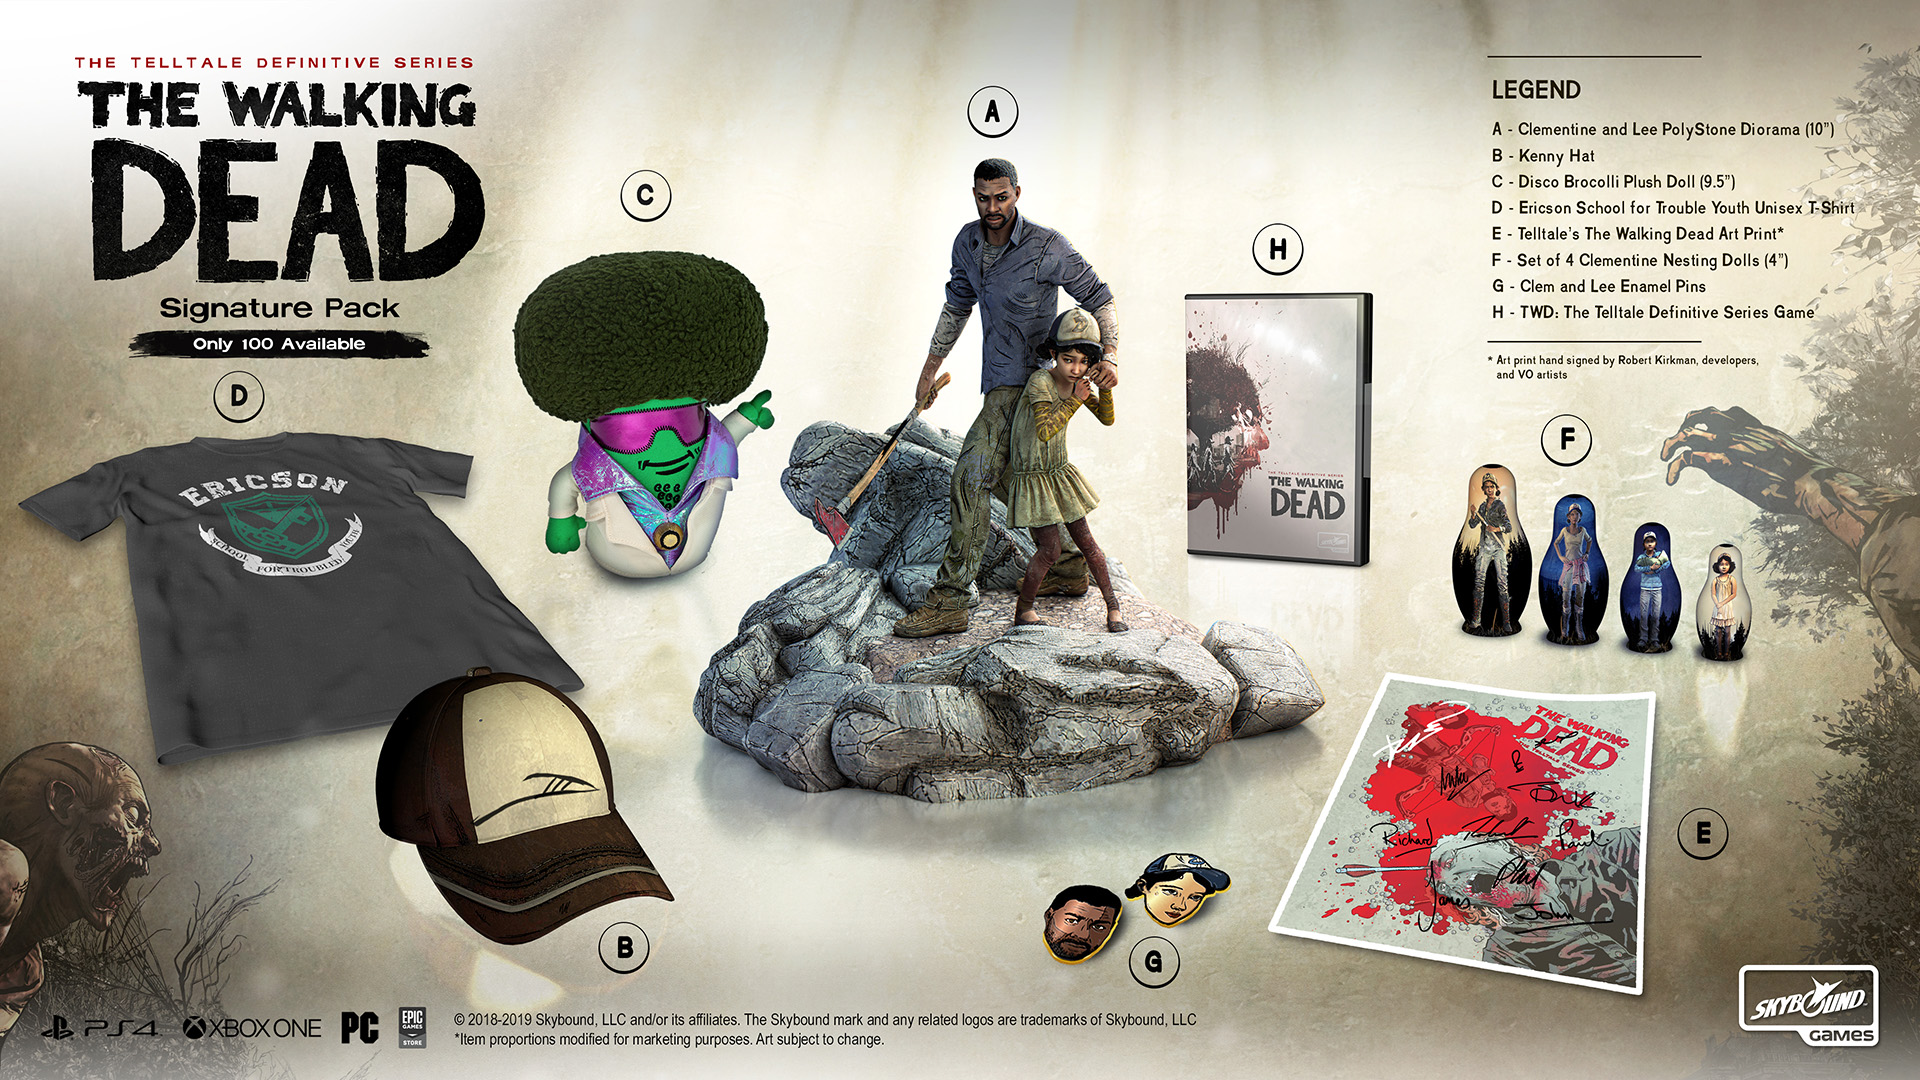 The Walking Dead The Telltale Definitive Series Signature Pack